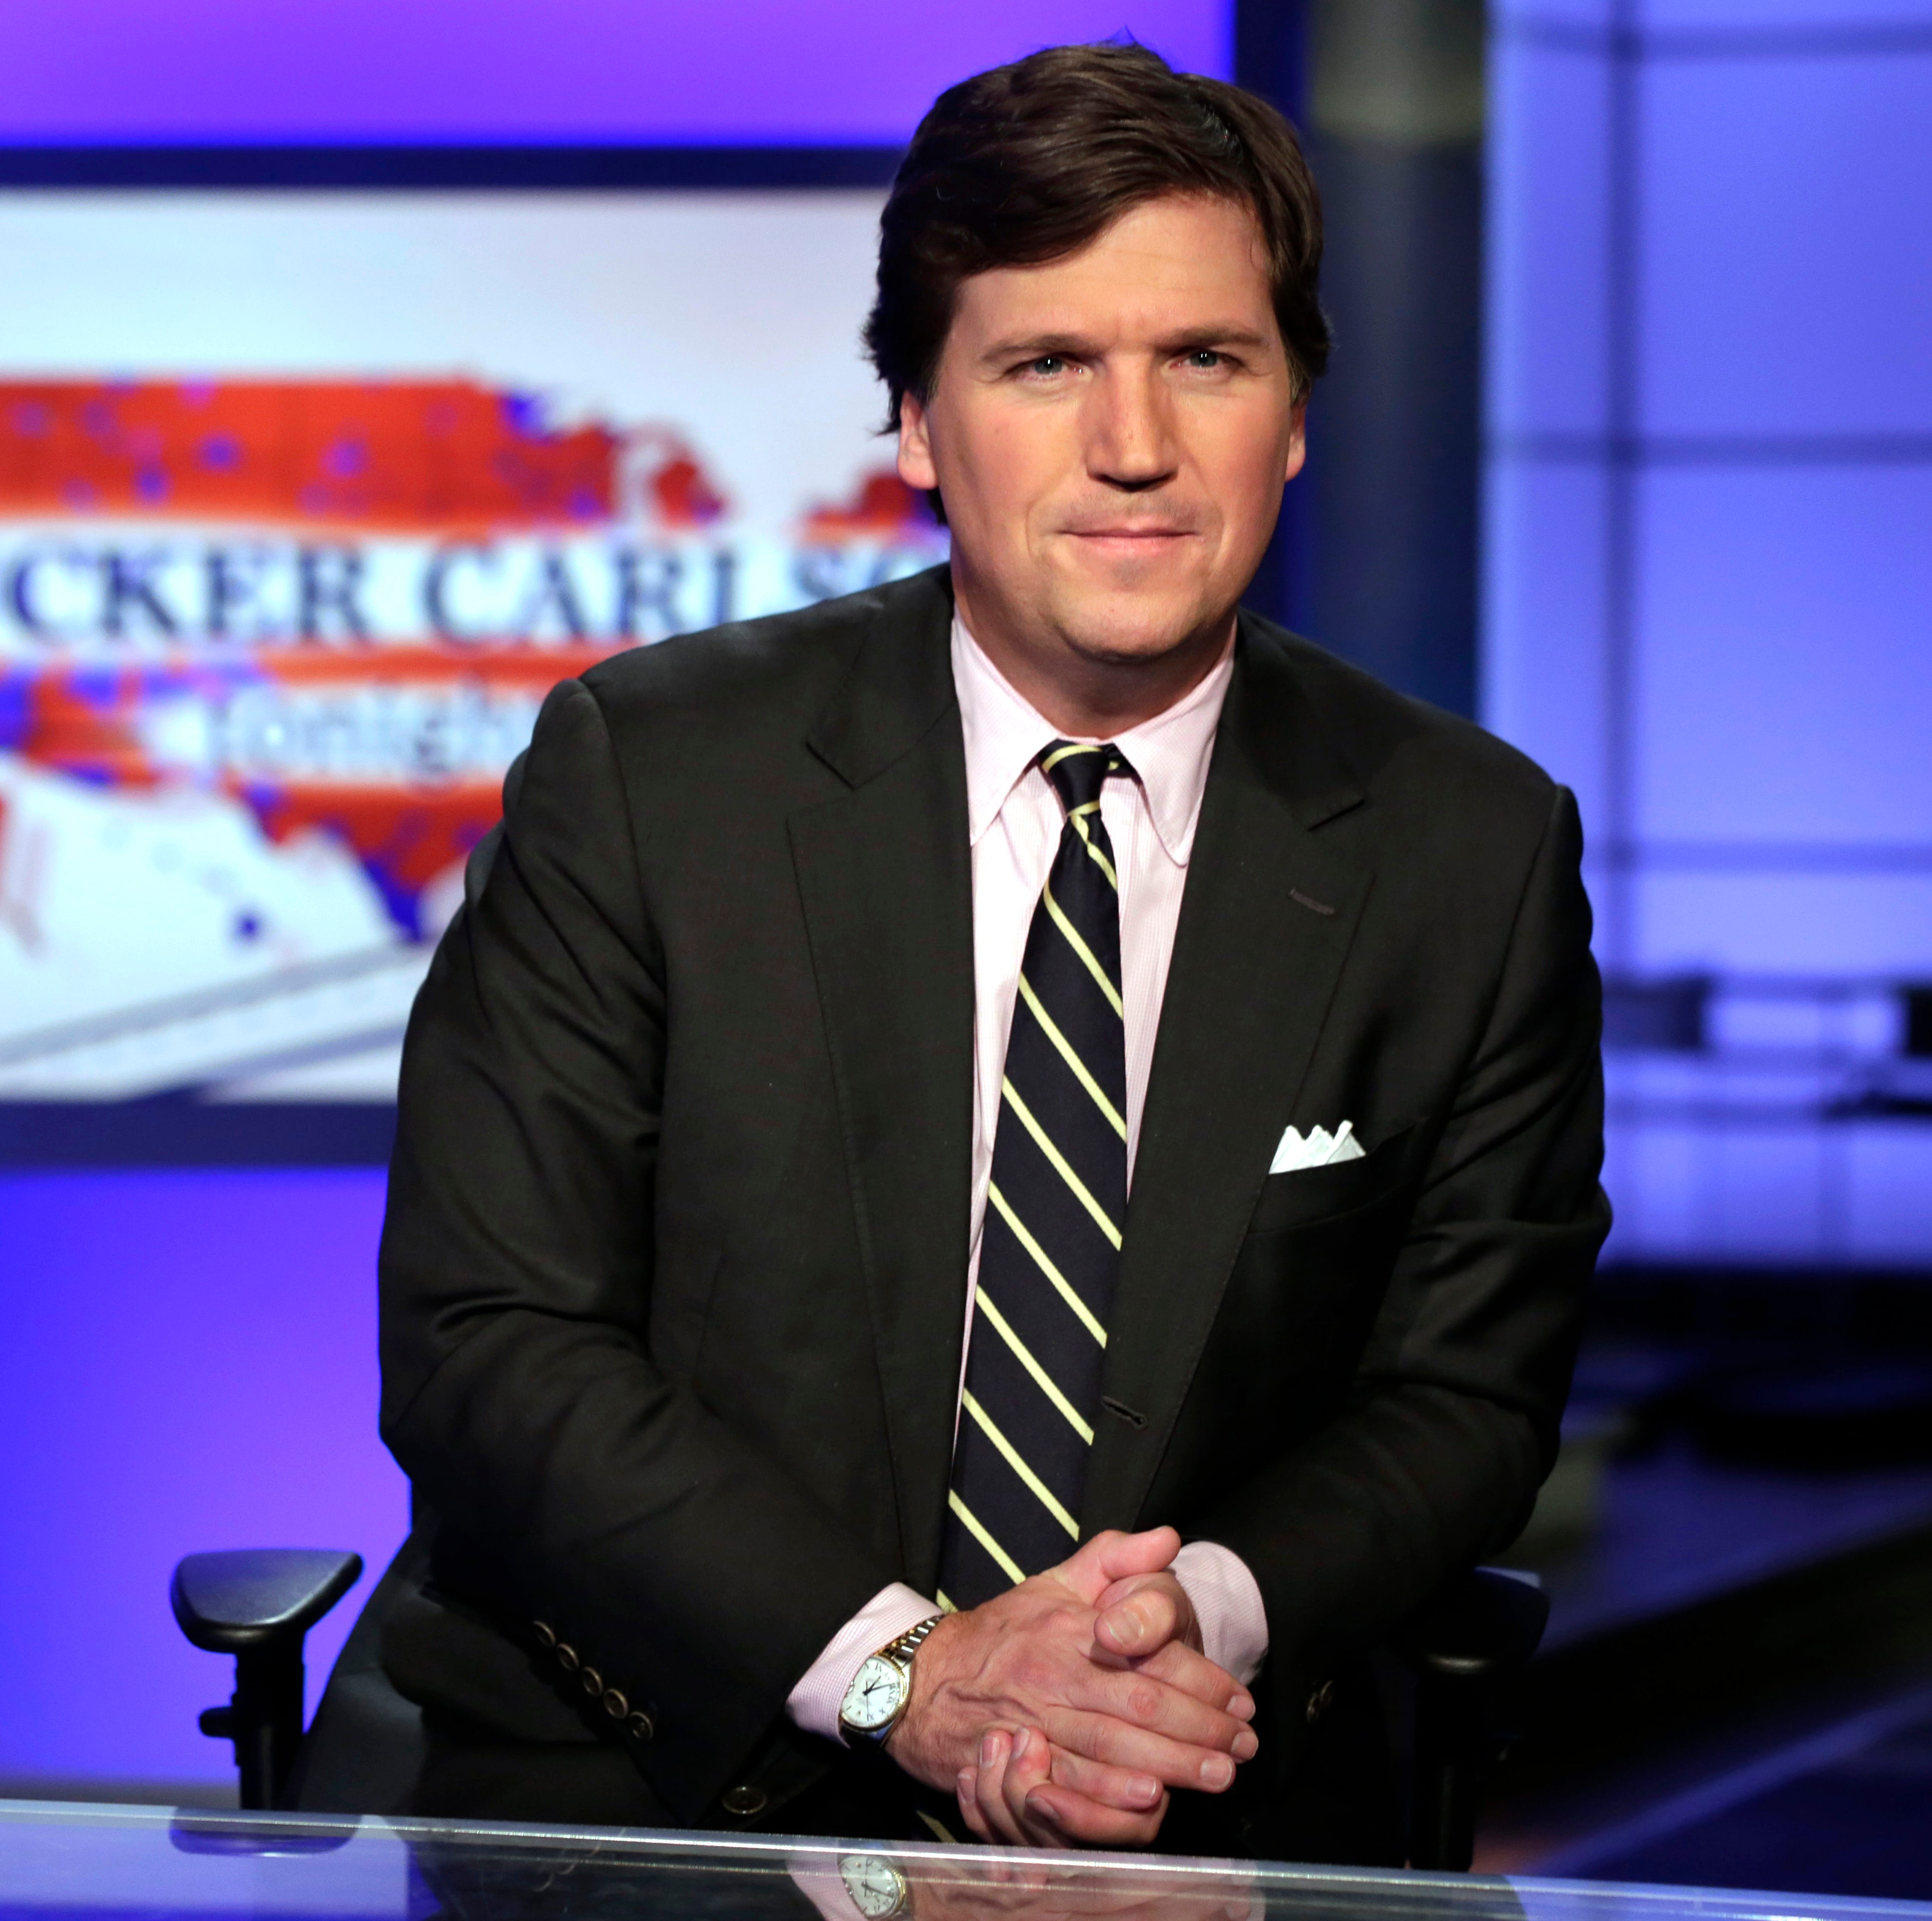 Fox News host Tucker Carlson